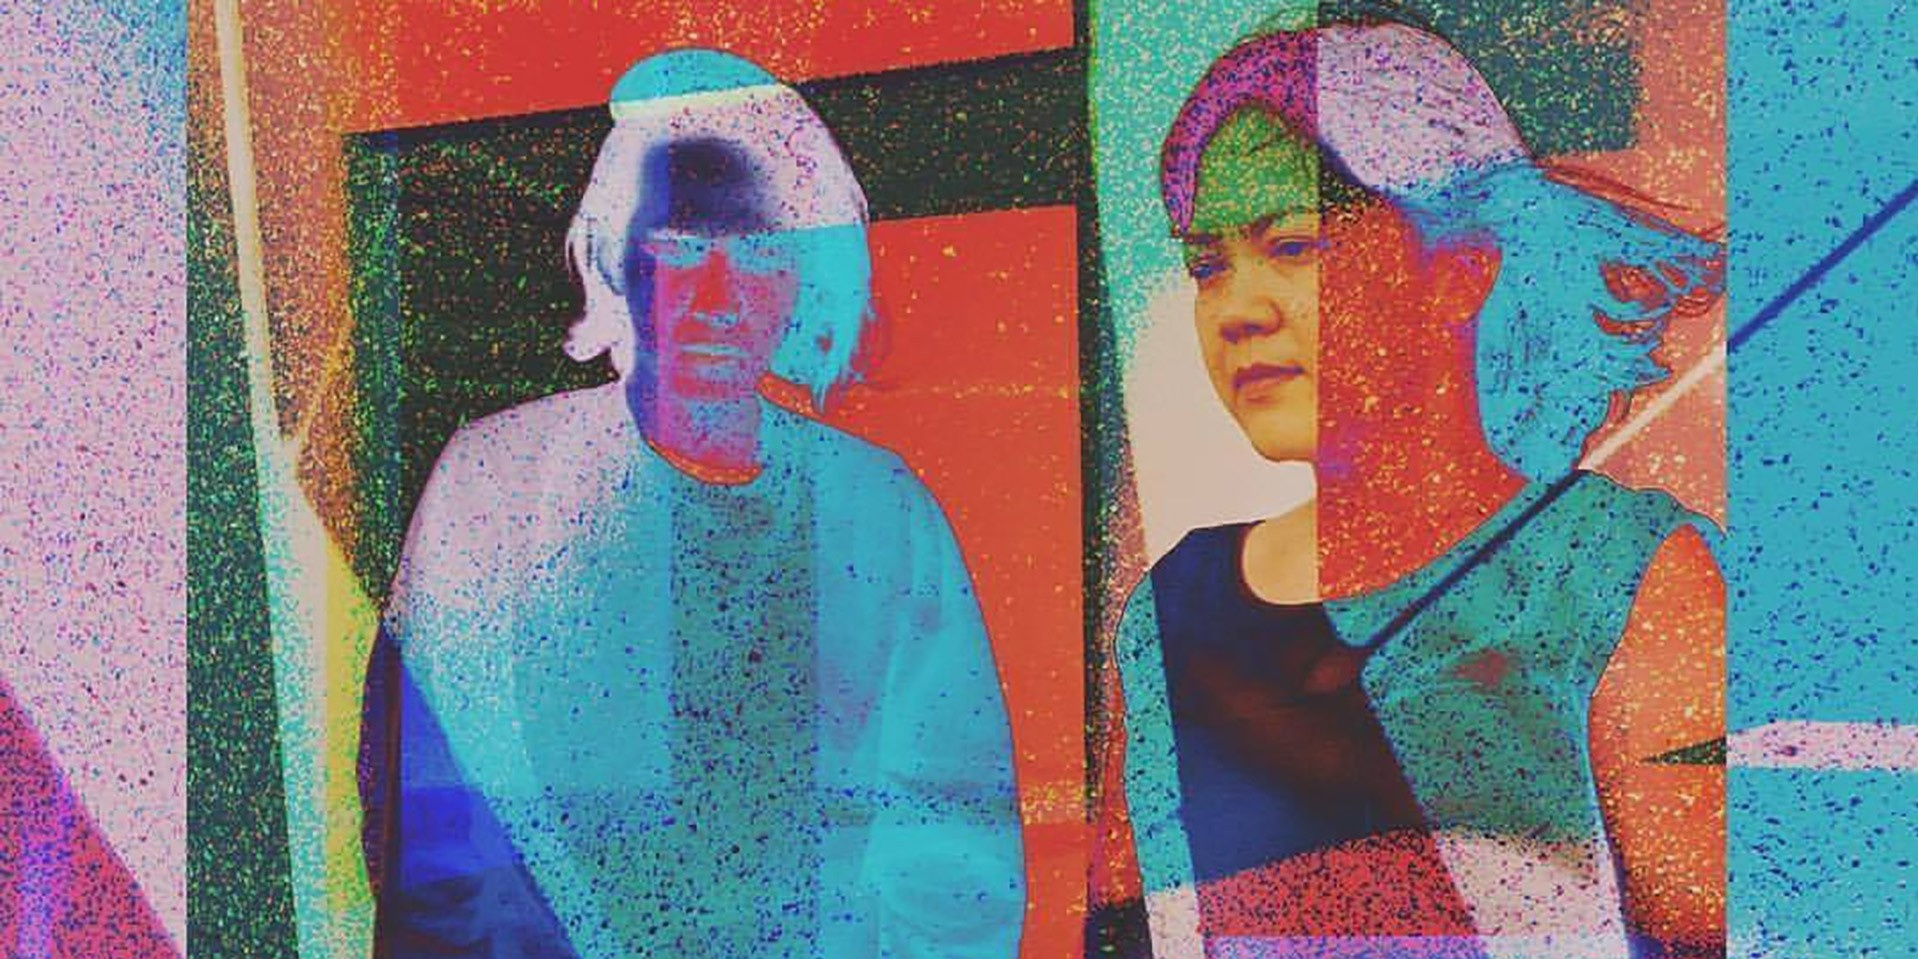 Outerhope share updates on upcoming album